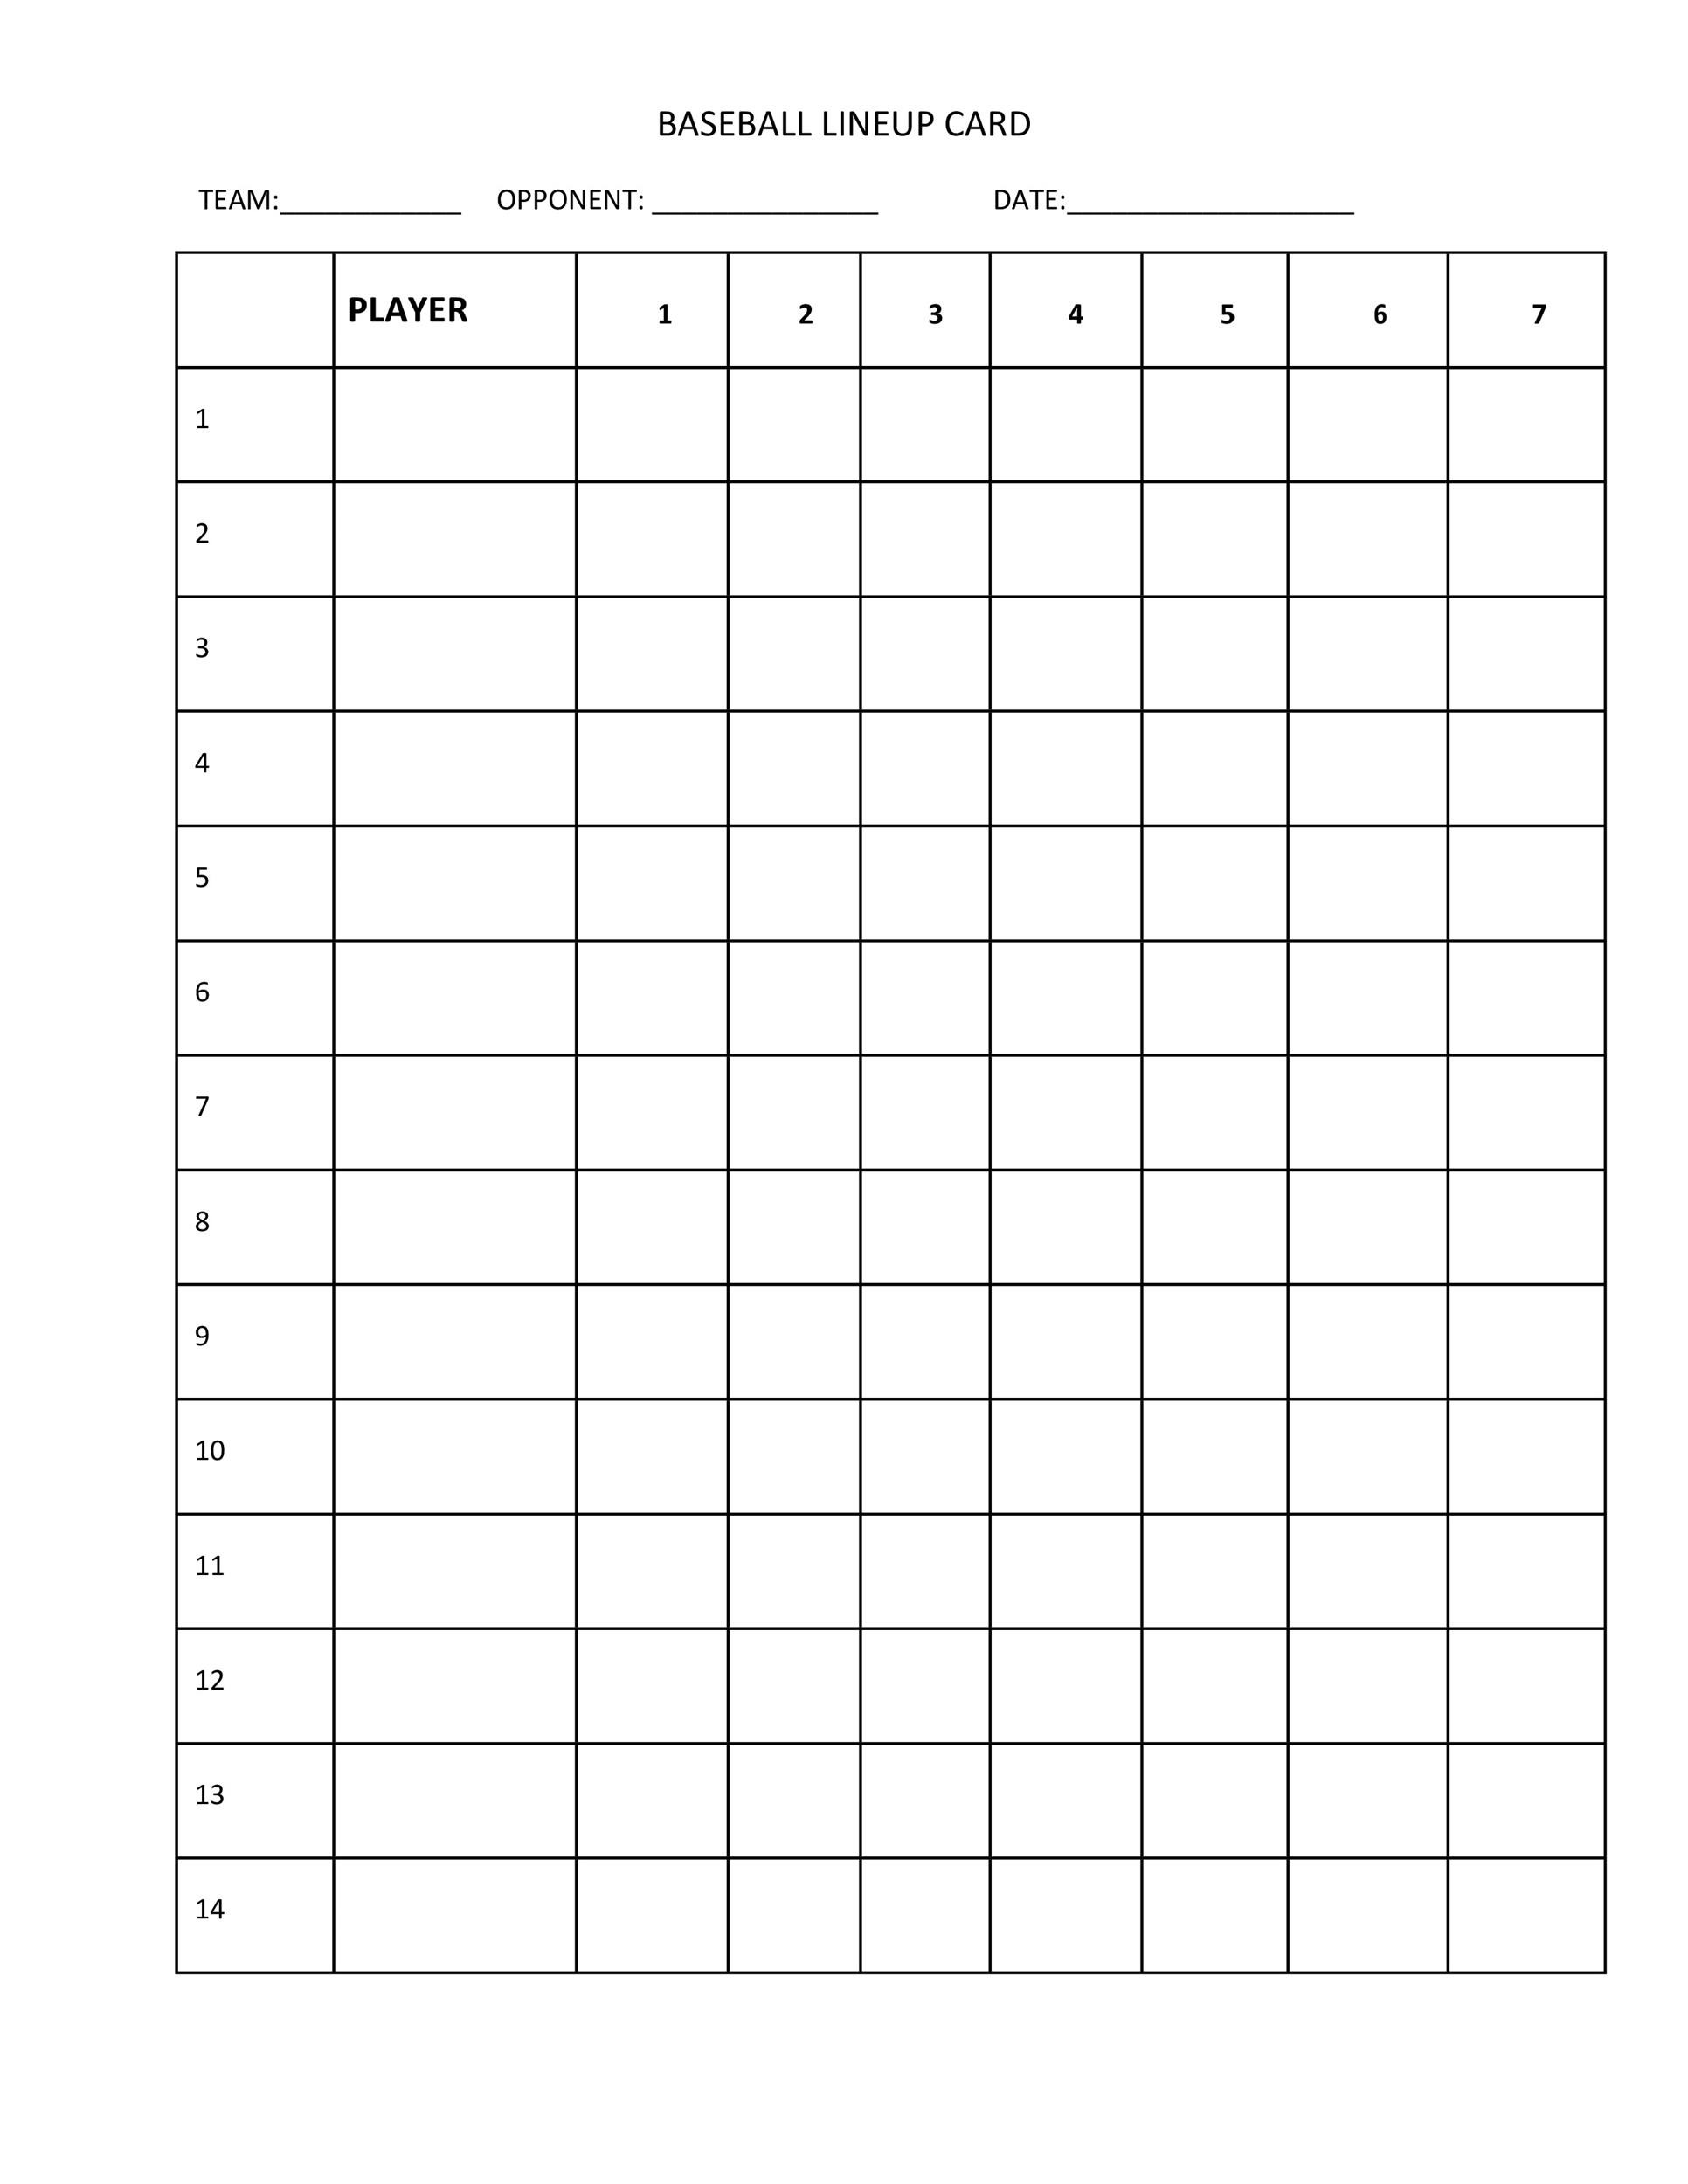 picture about Printable Baseball Lineup Cards called 33 Printable Baseball Lineup Templates [Totally free Down load] ᐅ